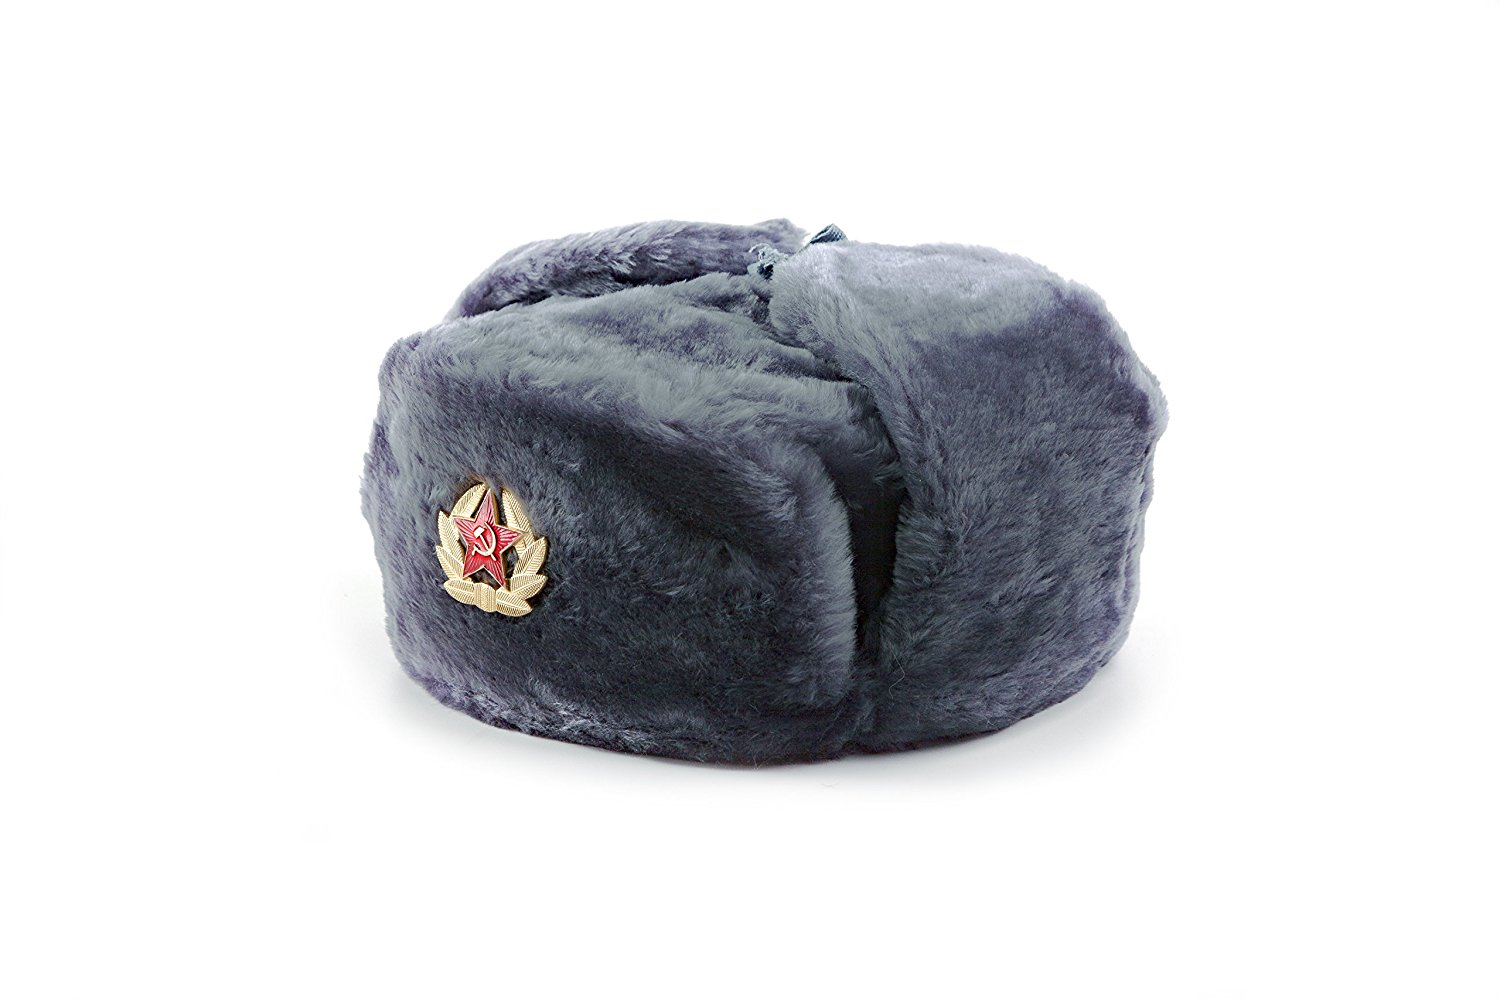 5f119f98eaf Get Quotations · Authentic Russian Ushanka Fur Hat – Soviet Army Heat  Trapper Winter Hat – Original Military USSR